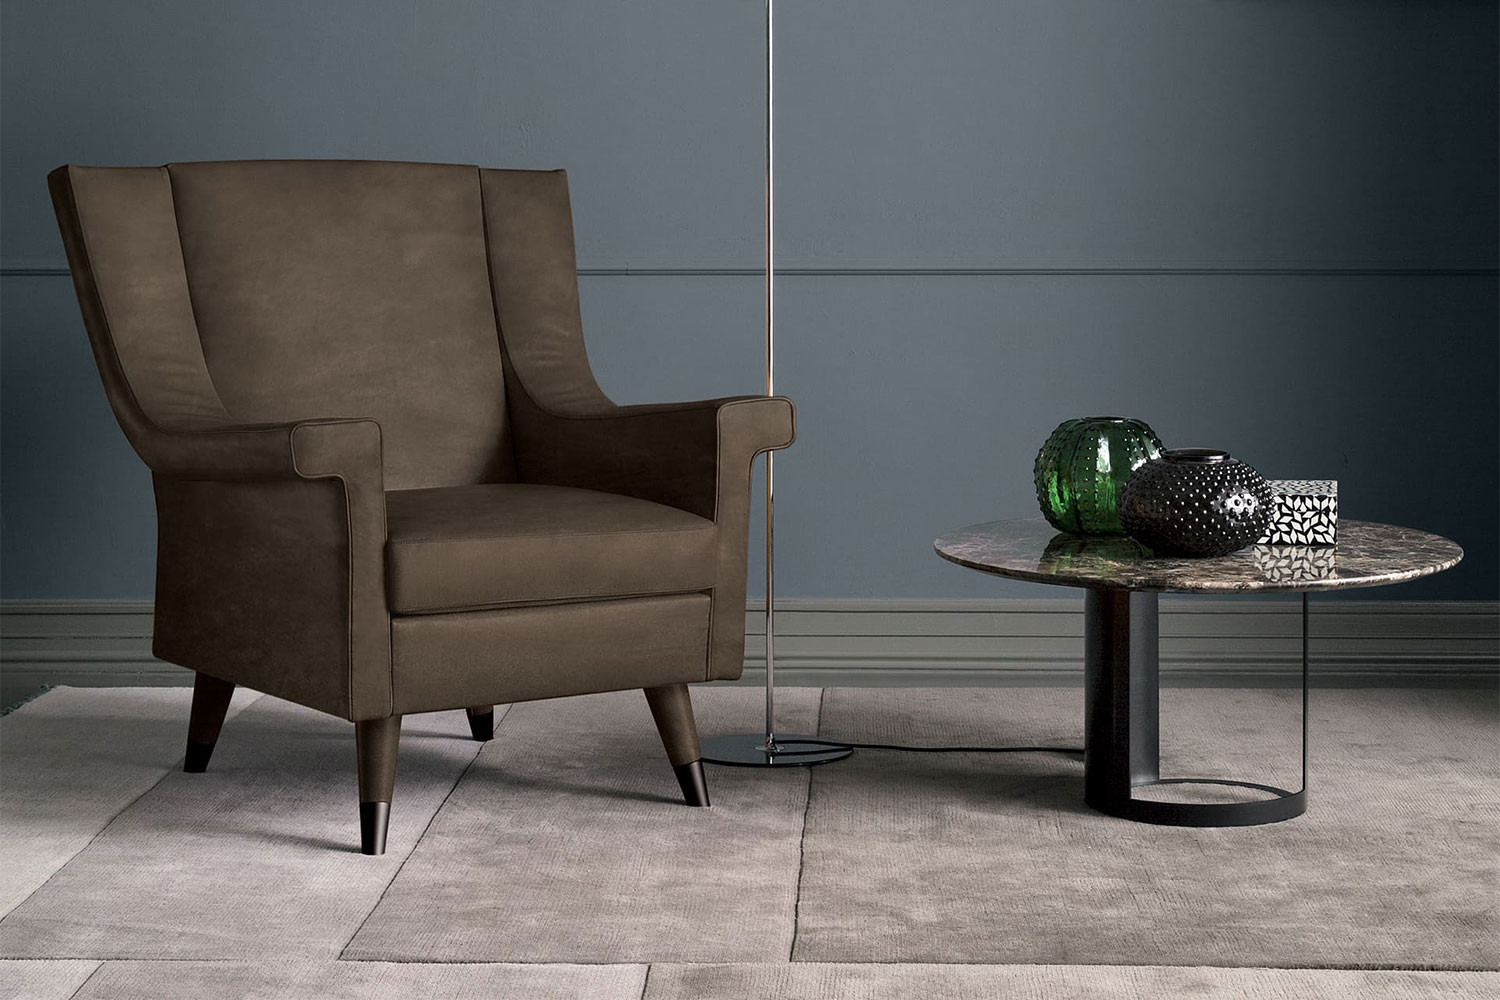 Retro style armchair with splayed legs with tips and slope arms